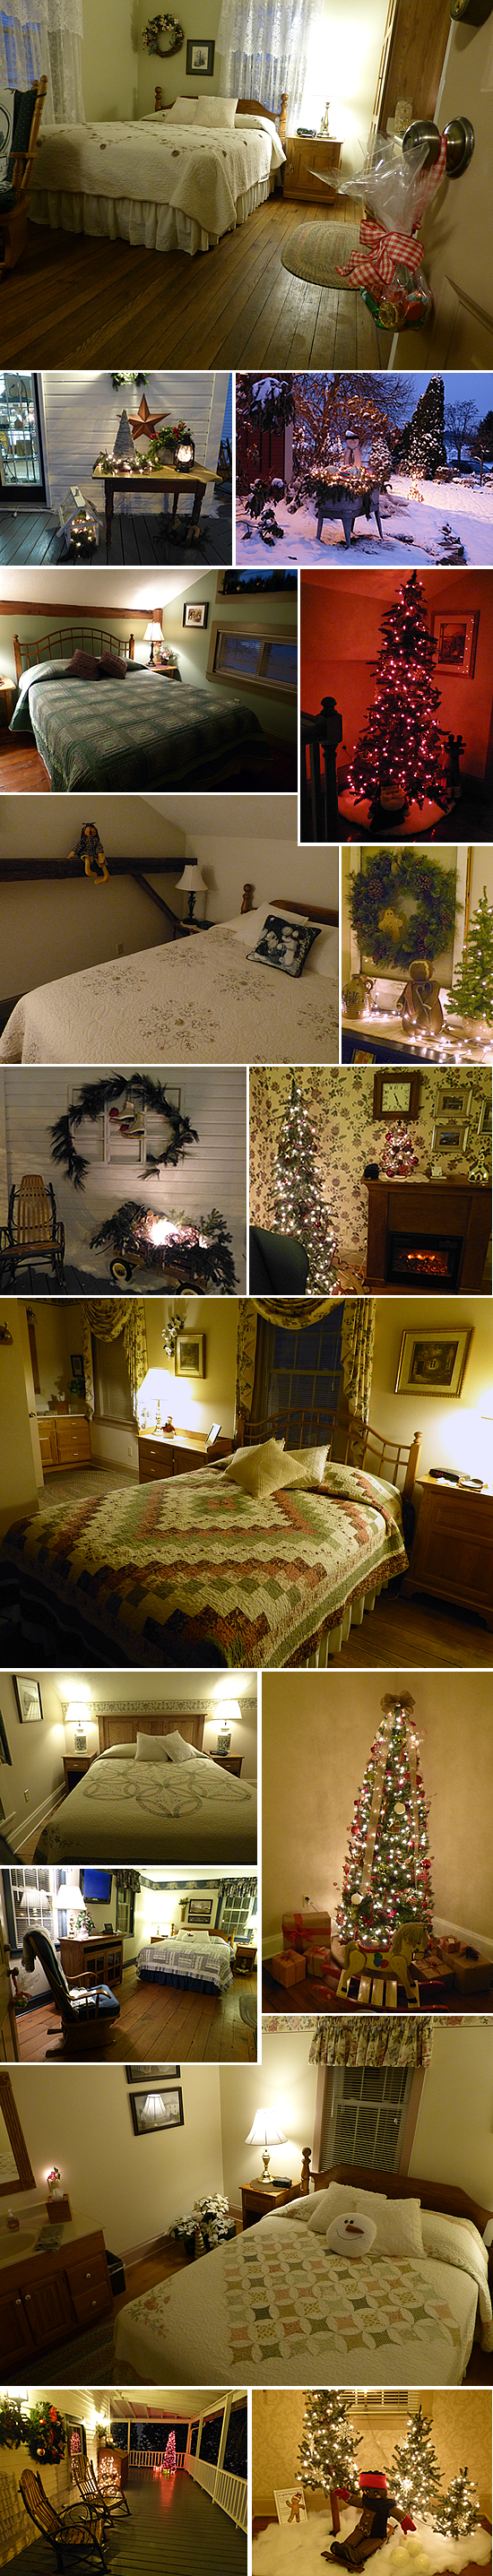 grapevine-house-christmas.jpg